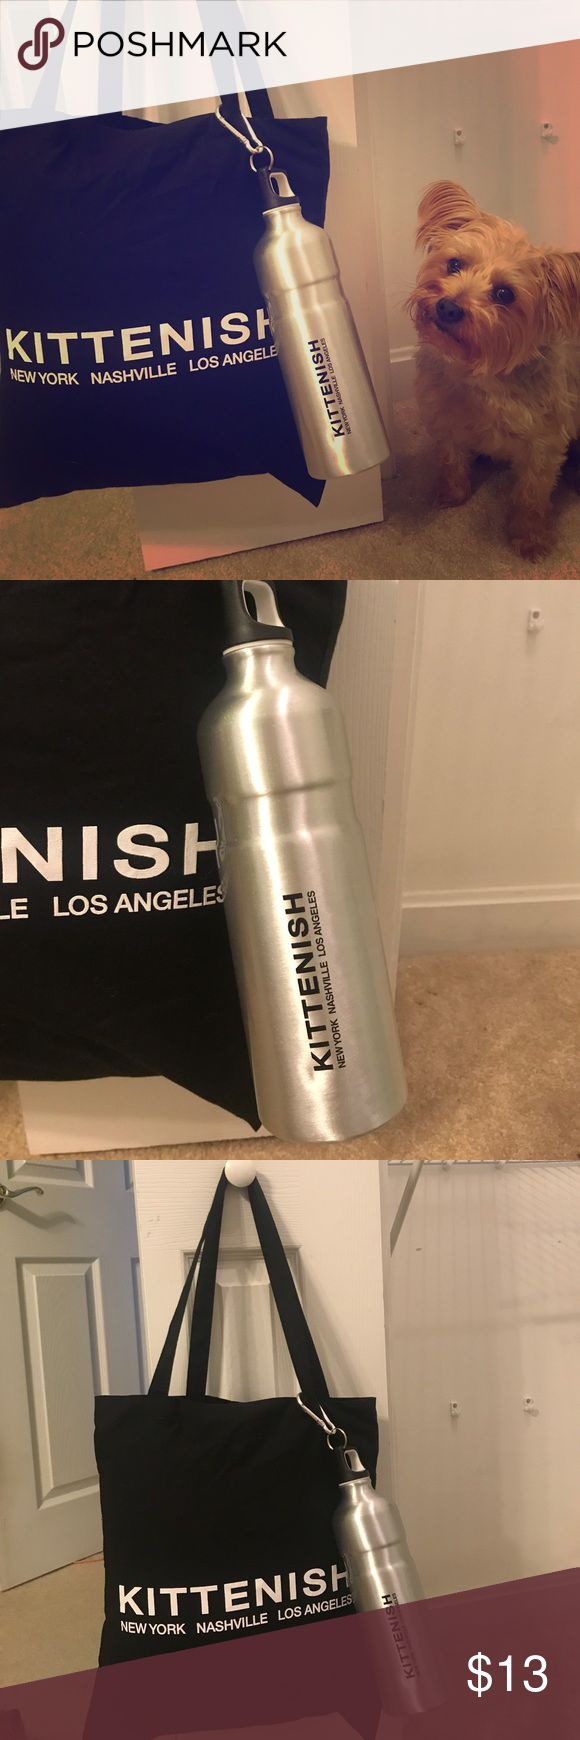 BUNDLE!  Kittenish Tote and aluminum water bottle Never been used exclusive black Kittenish Tote with white lettering . Never been used aluminum Kittenish water bottle. Kittenish Bags Totes